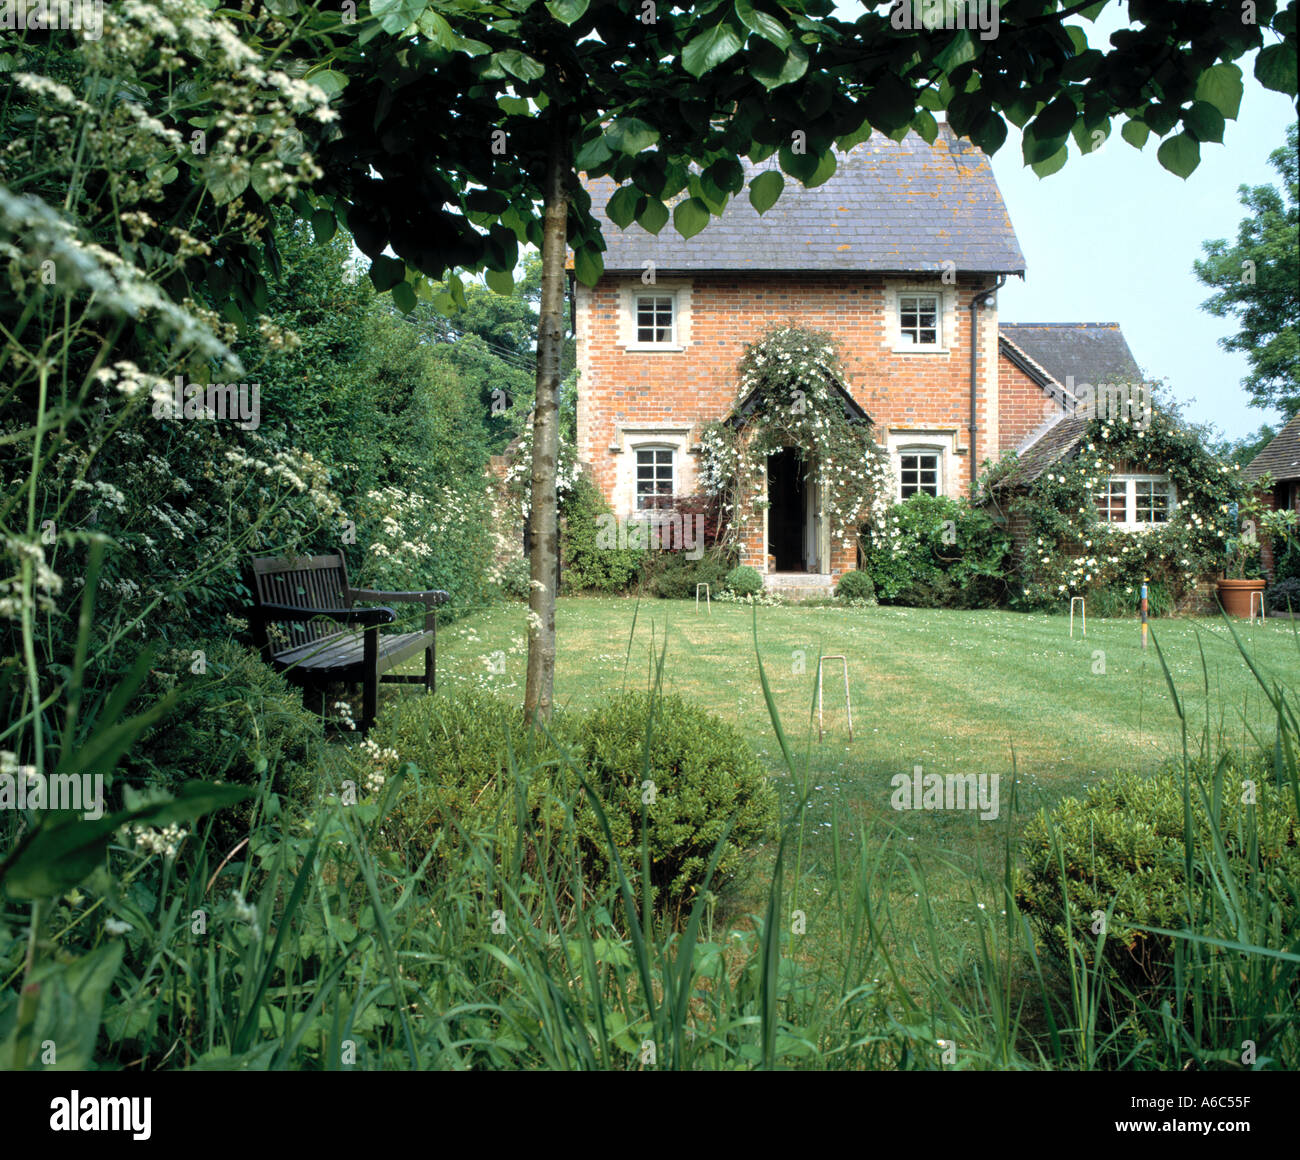 english country cottage - Stock Image